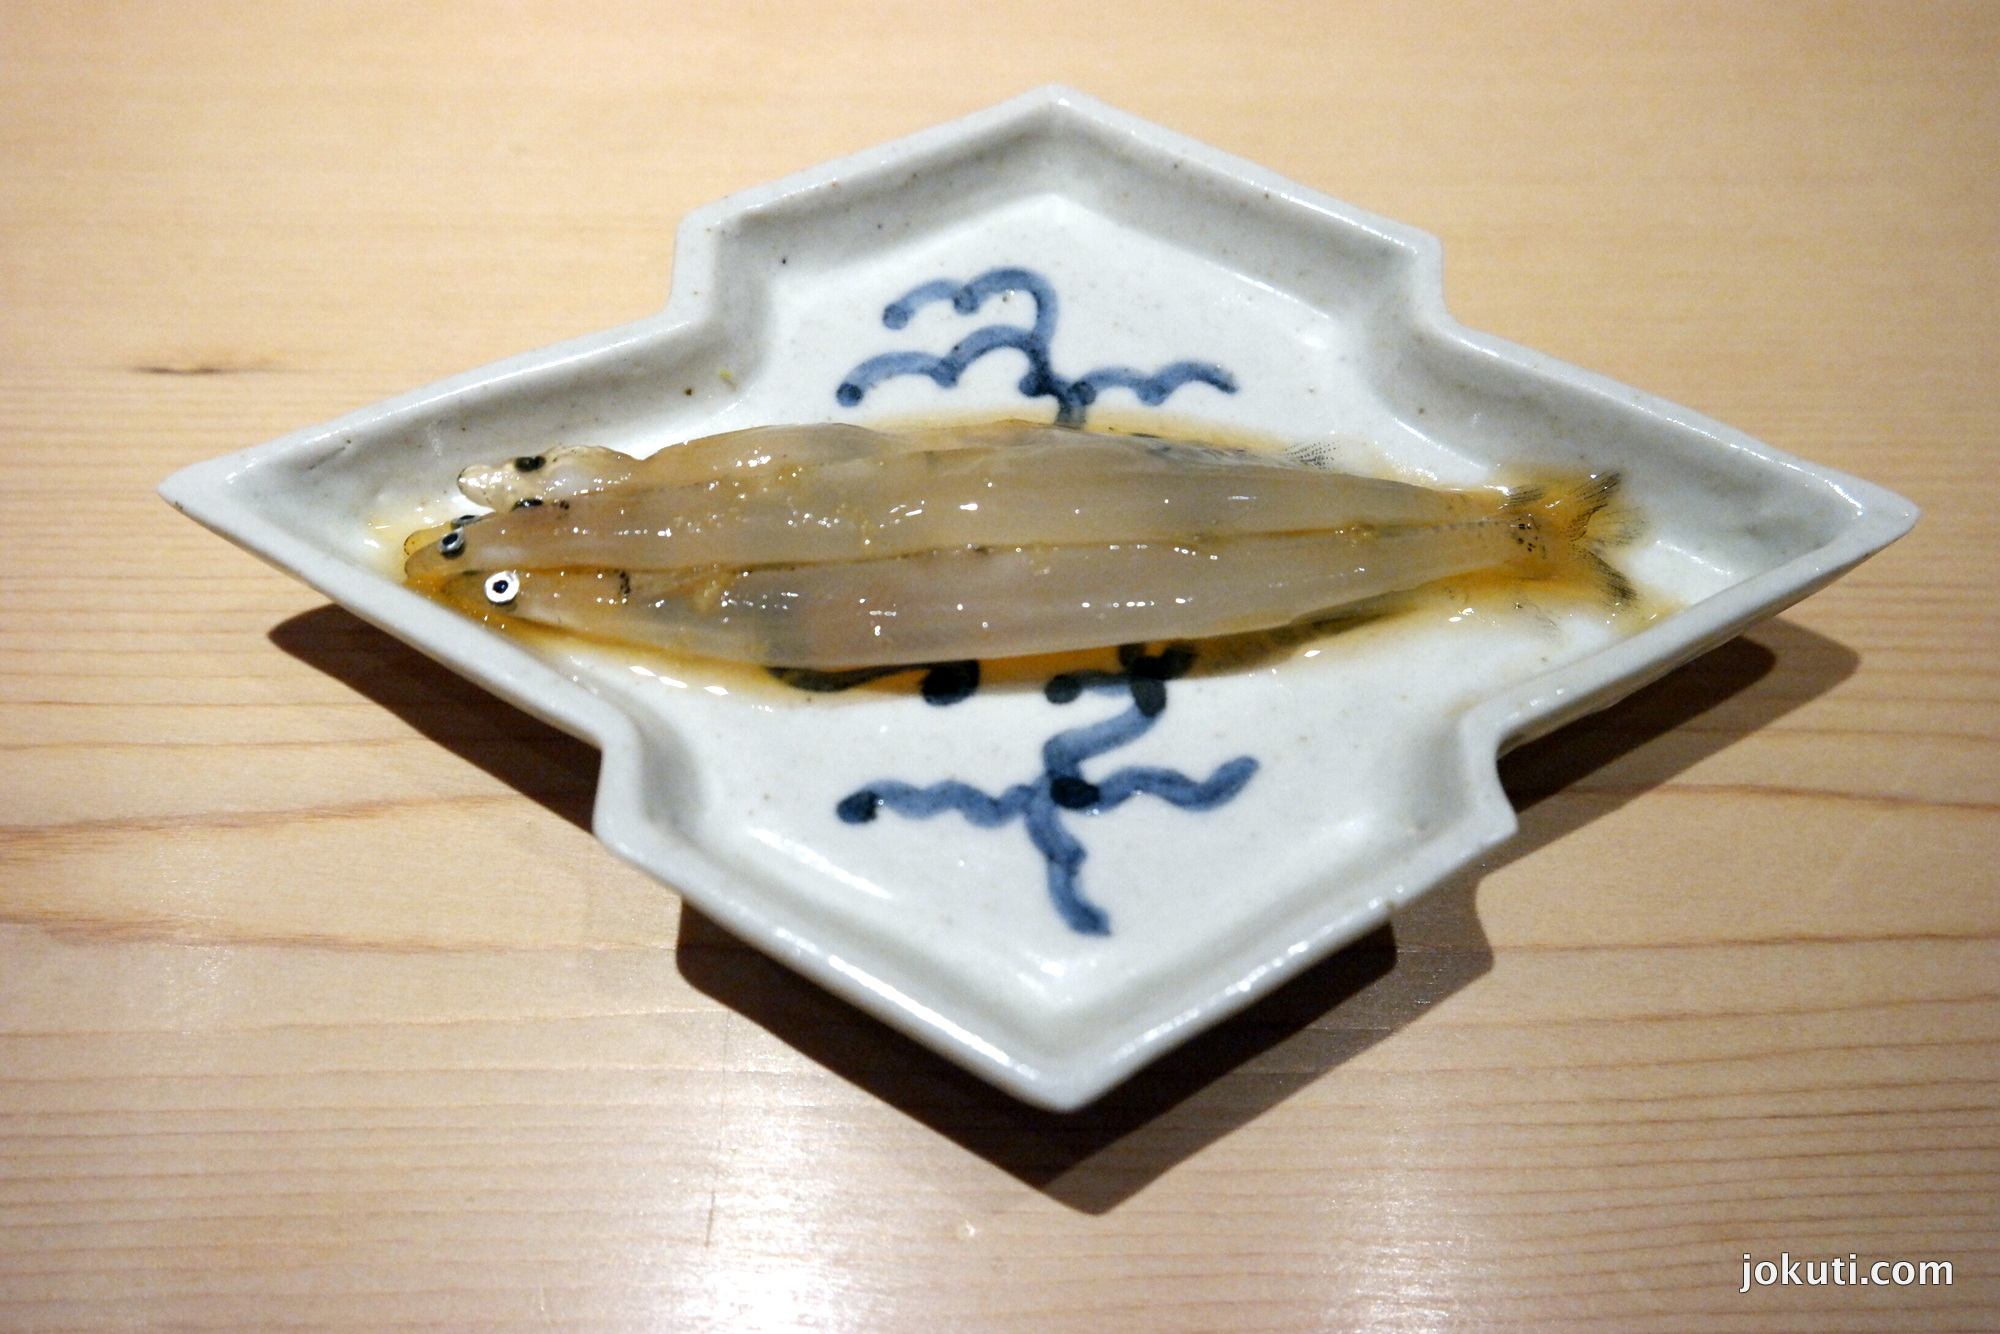 Shirauo ('Japanese anchovies' or ice fish).